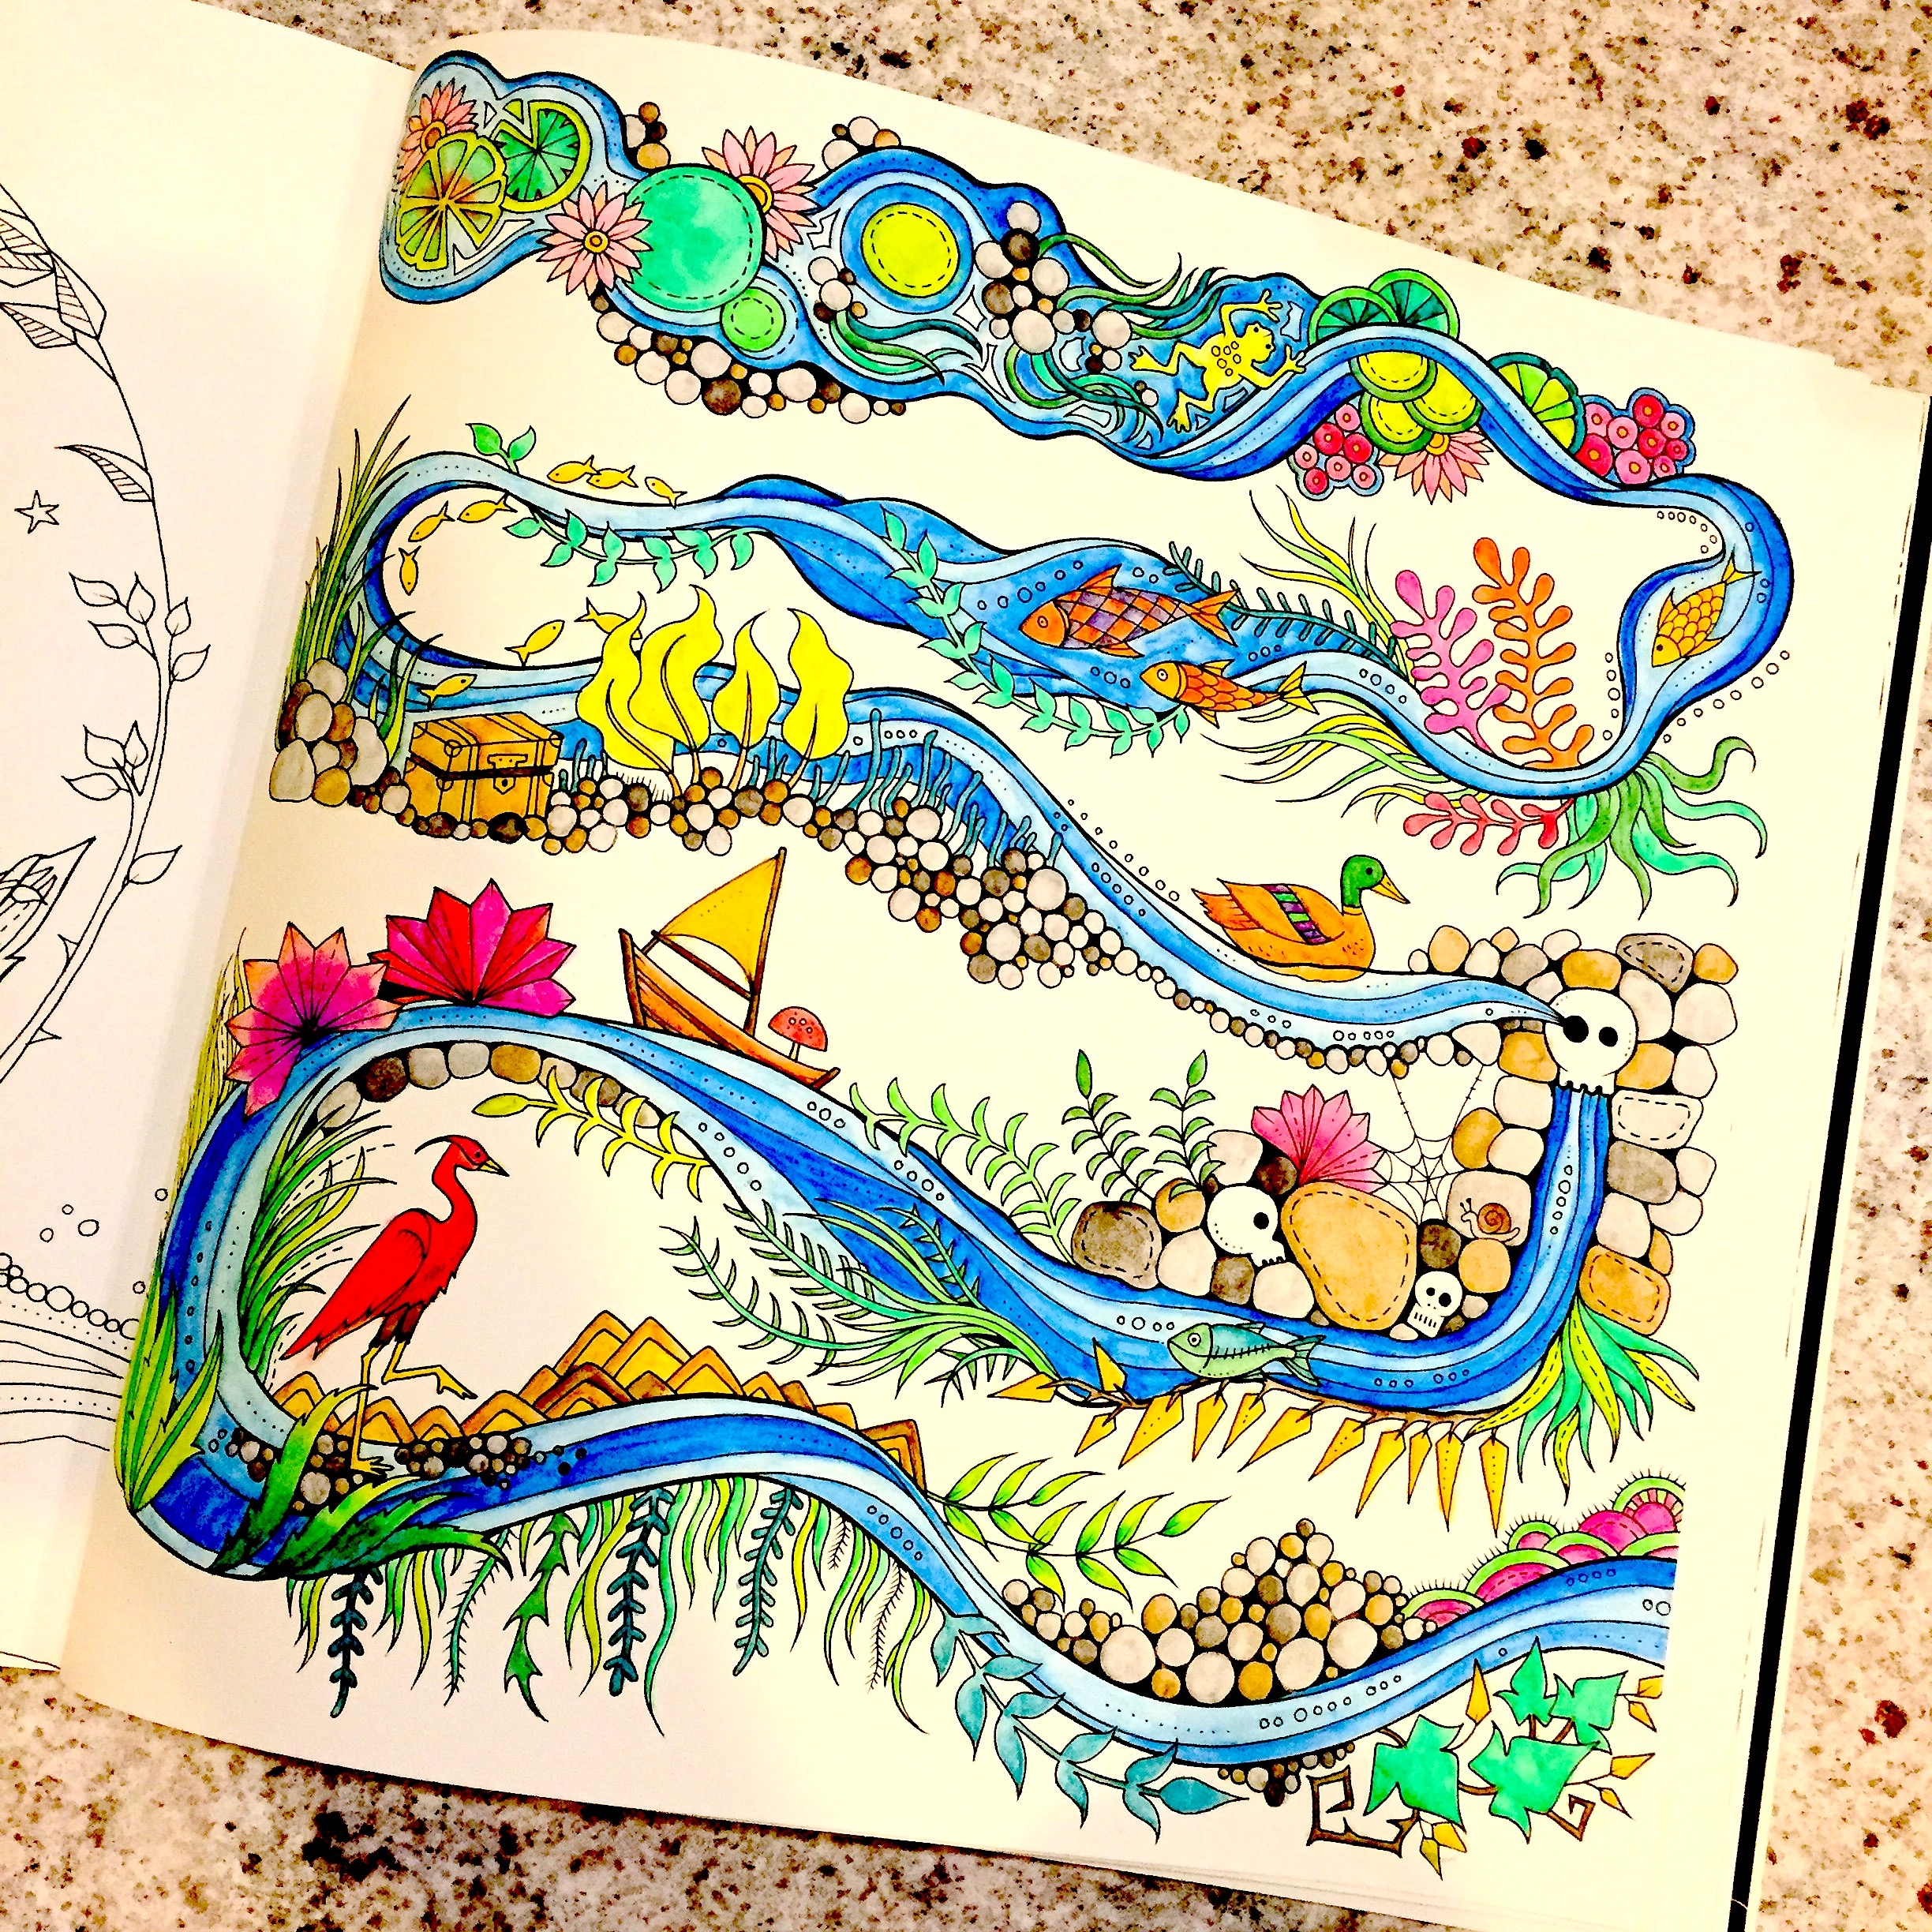 Enchanted forest coloring book website - I Once Had An Art Teacher In High School Who Said She Banned Colouring Books In Her Household While Her Kids Were Growing Up Because It Stifled Their